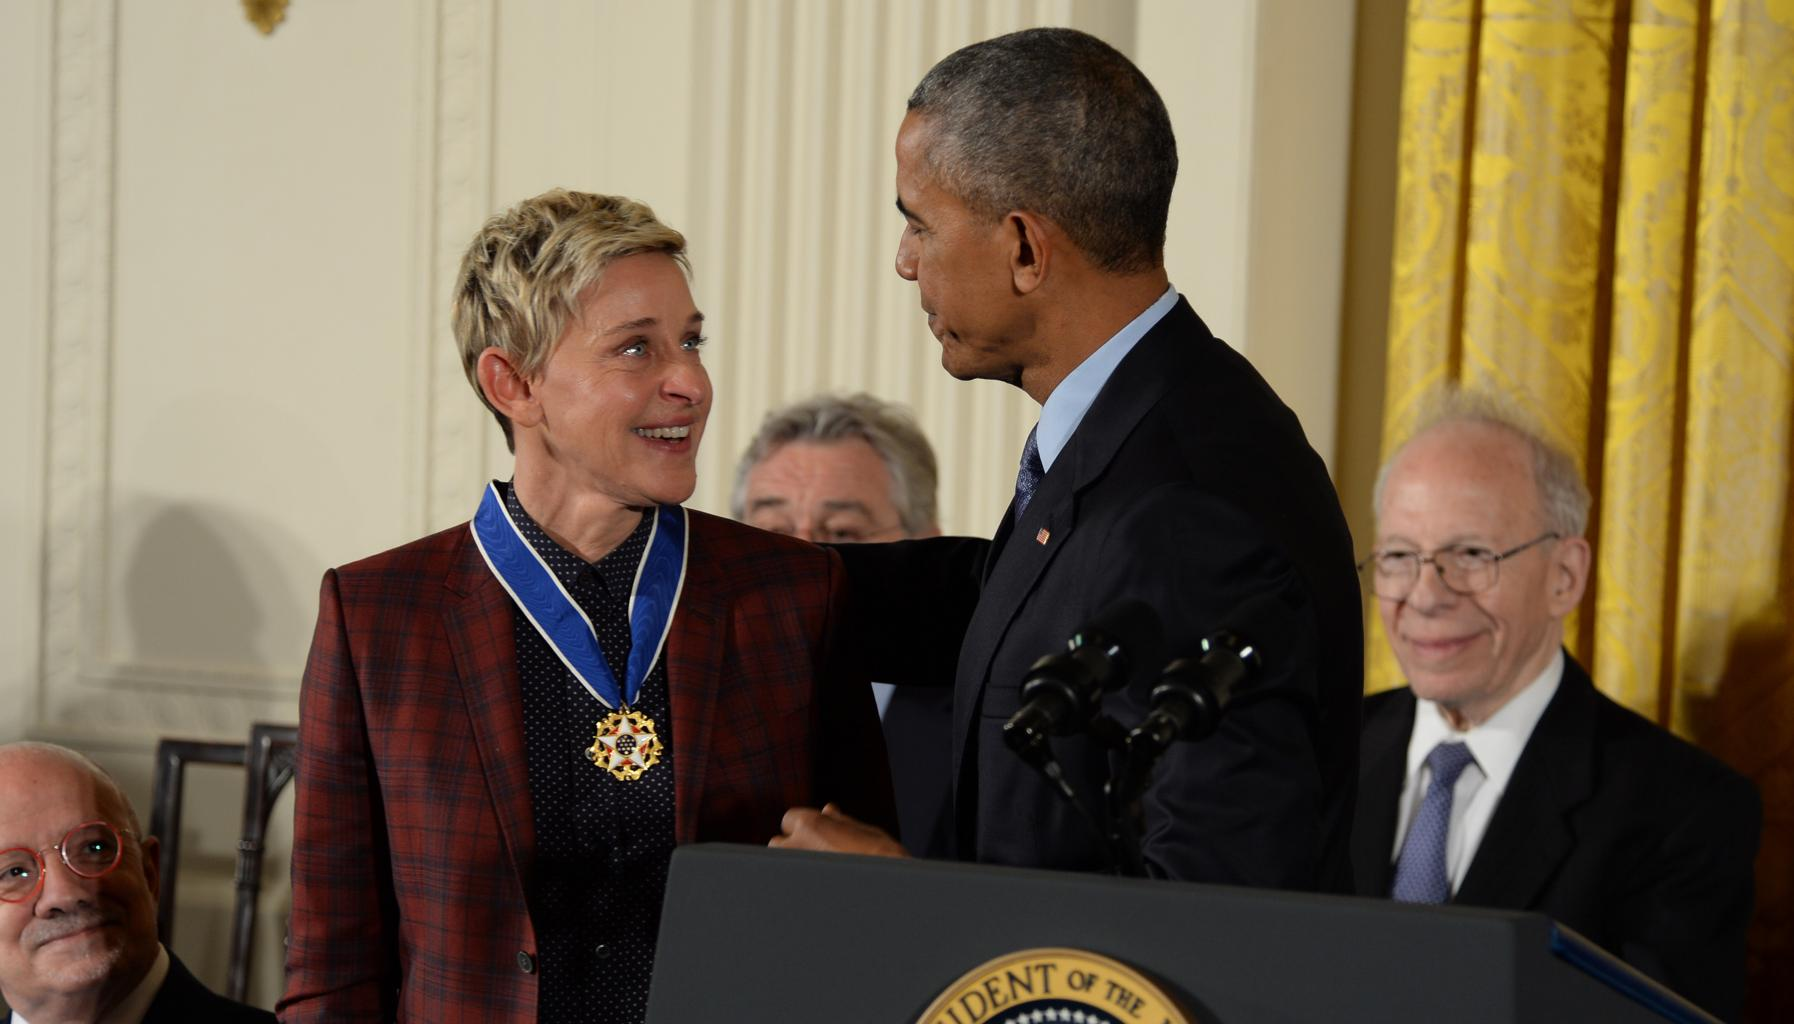 Ellen DeGeneres In Tears At White House, Plus More Heartwarming Moments From Presidential Medal of Freedom Ceremony